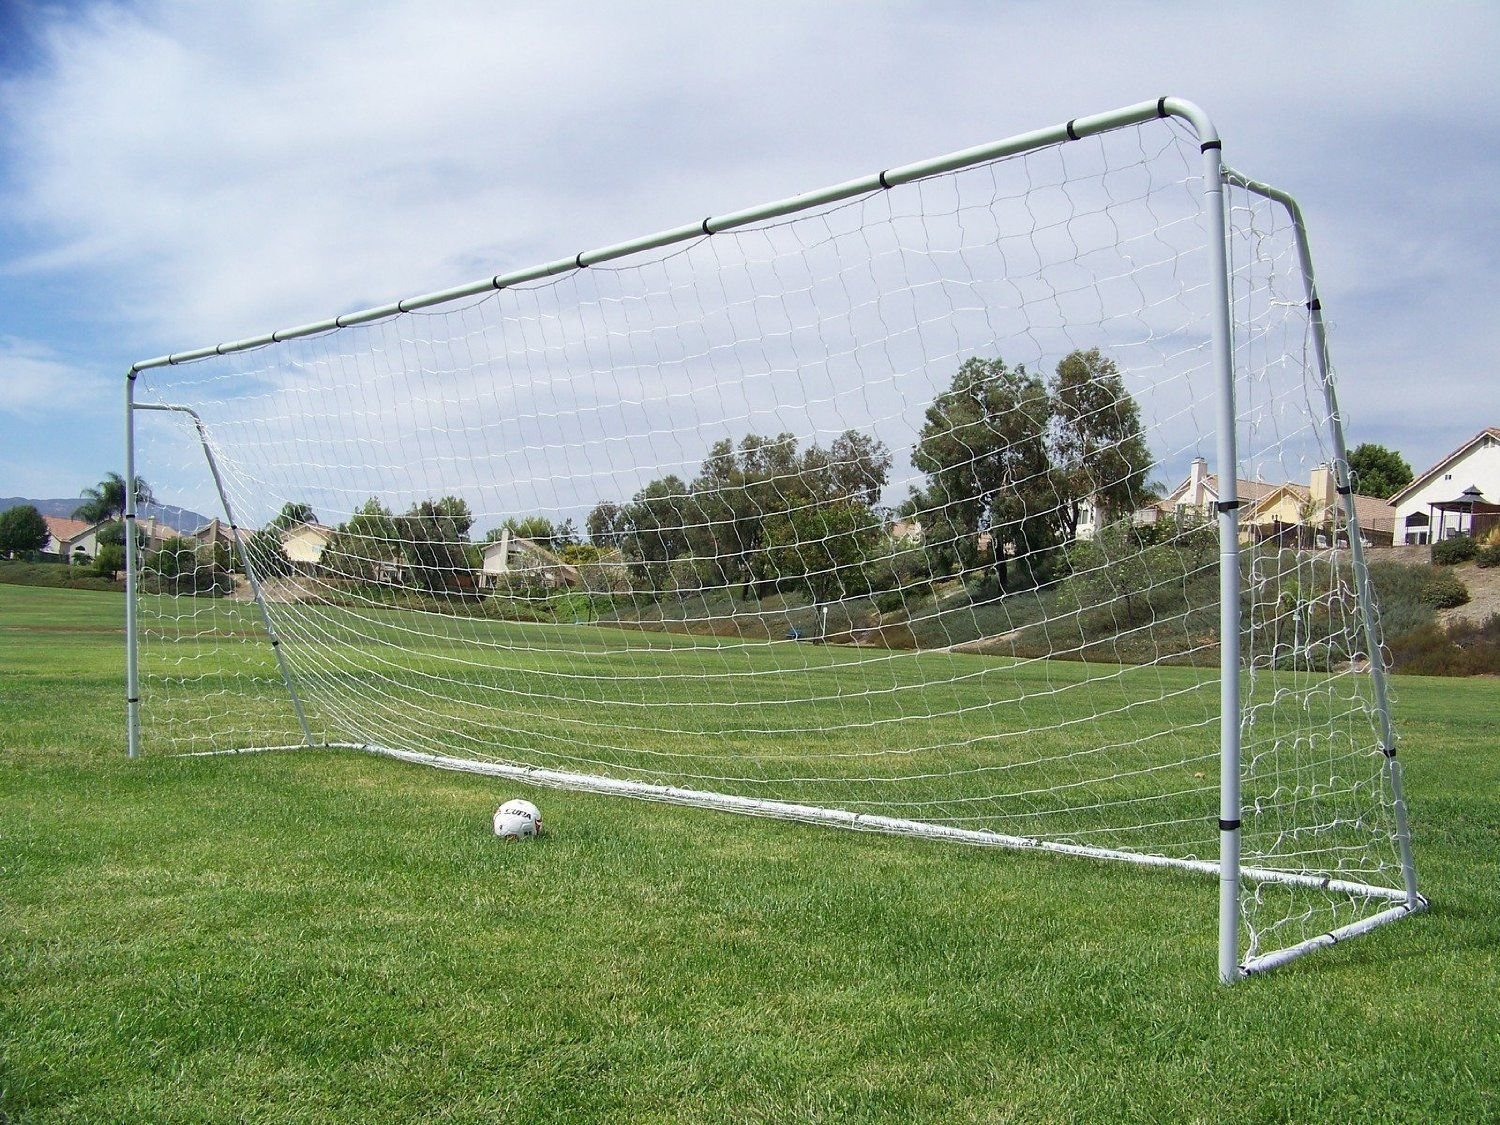 Official Size 24 X 8 X 5 Ft. Steel Soccer Goal. Heavy Duty Frame w/Net. Tournament, Regulation FIFA/MLS Size. Professional Portable Practice Training Aid. 24 X 8, 24x8(1Net)